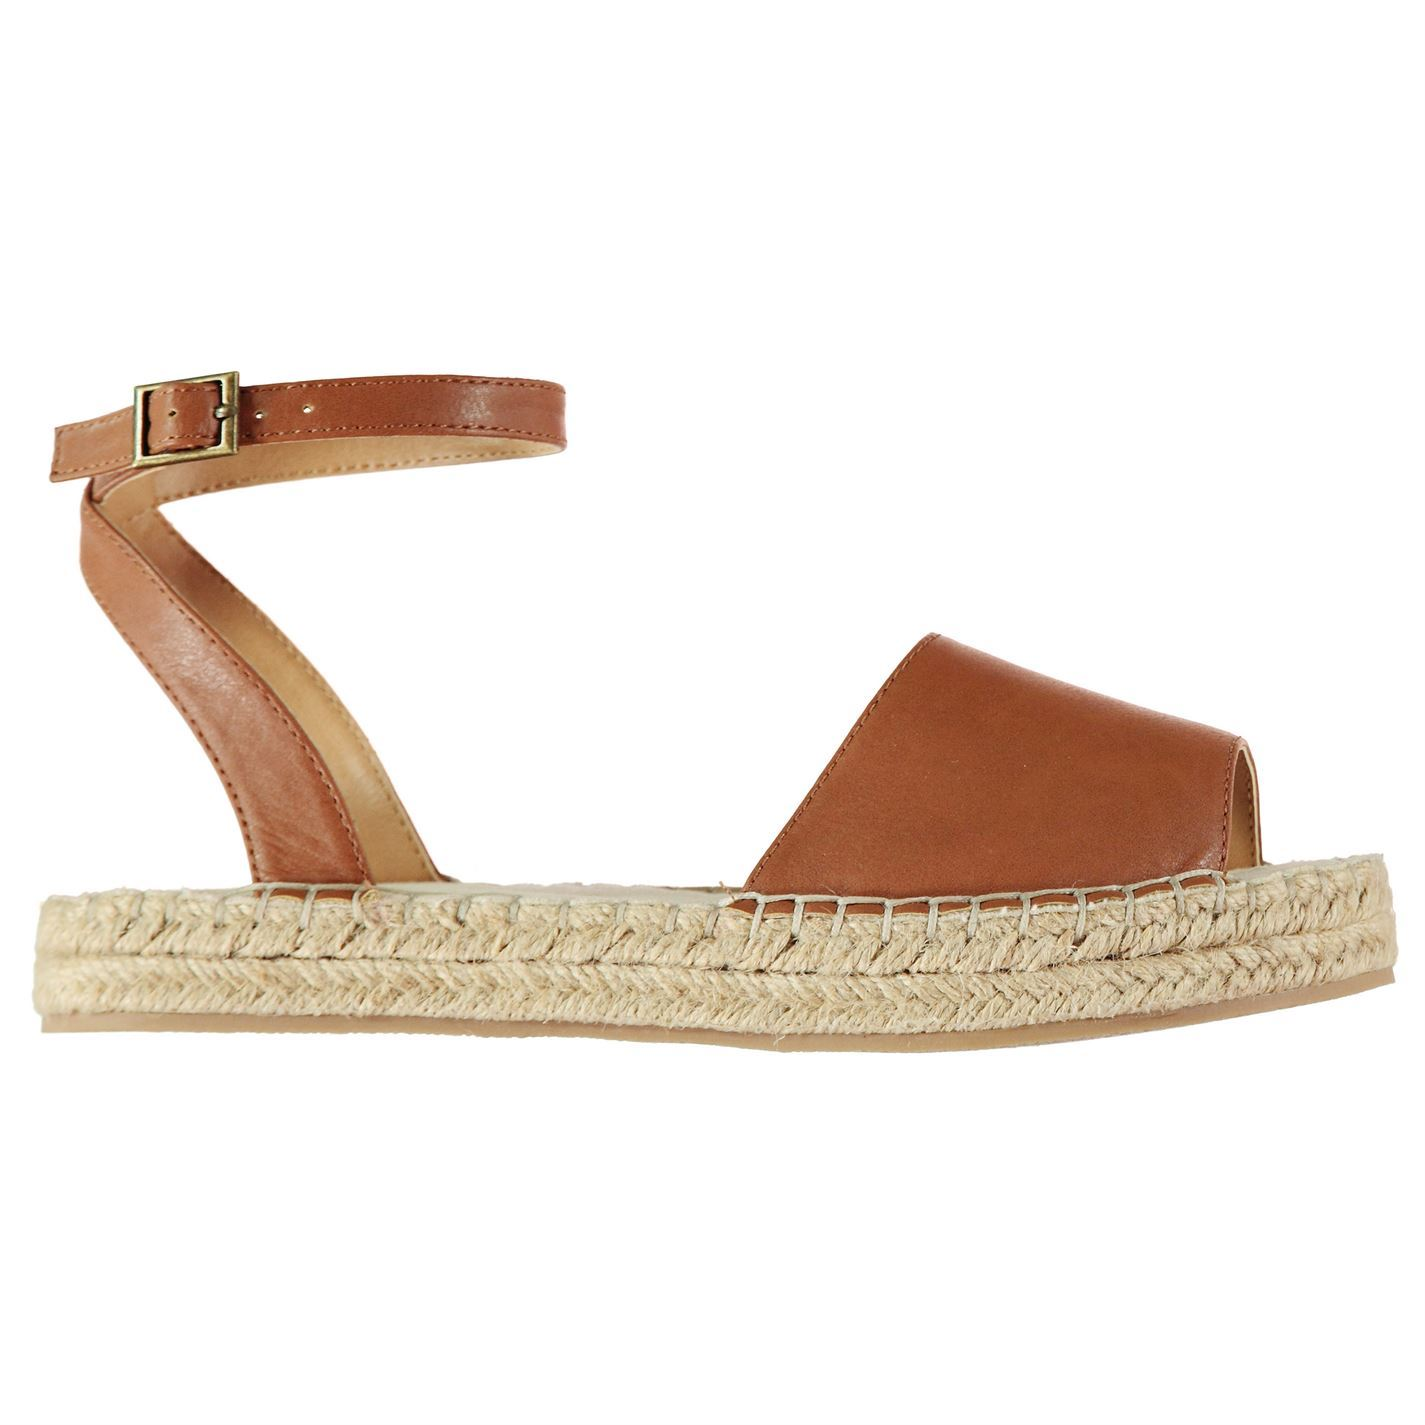 5ed4ce9a9ff Details about SoulCal Womens Espadrille Sandals Flat Buckle Fastening Ankle  Strap Summer